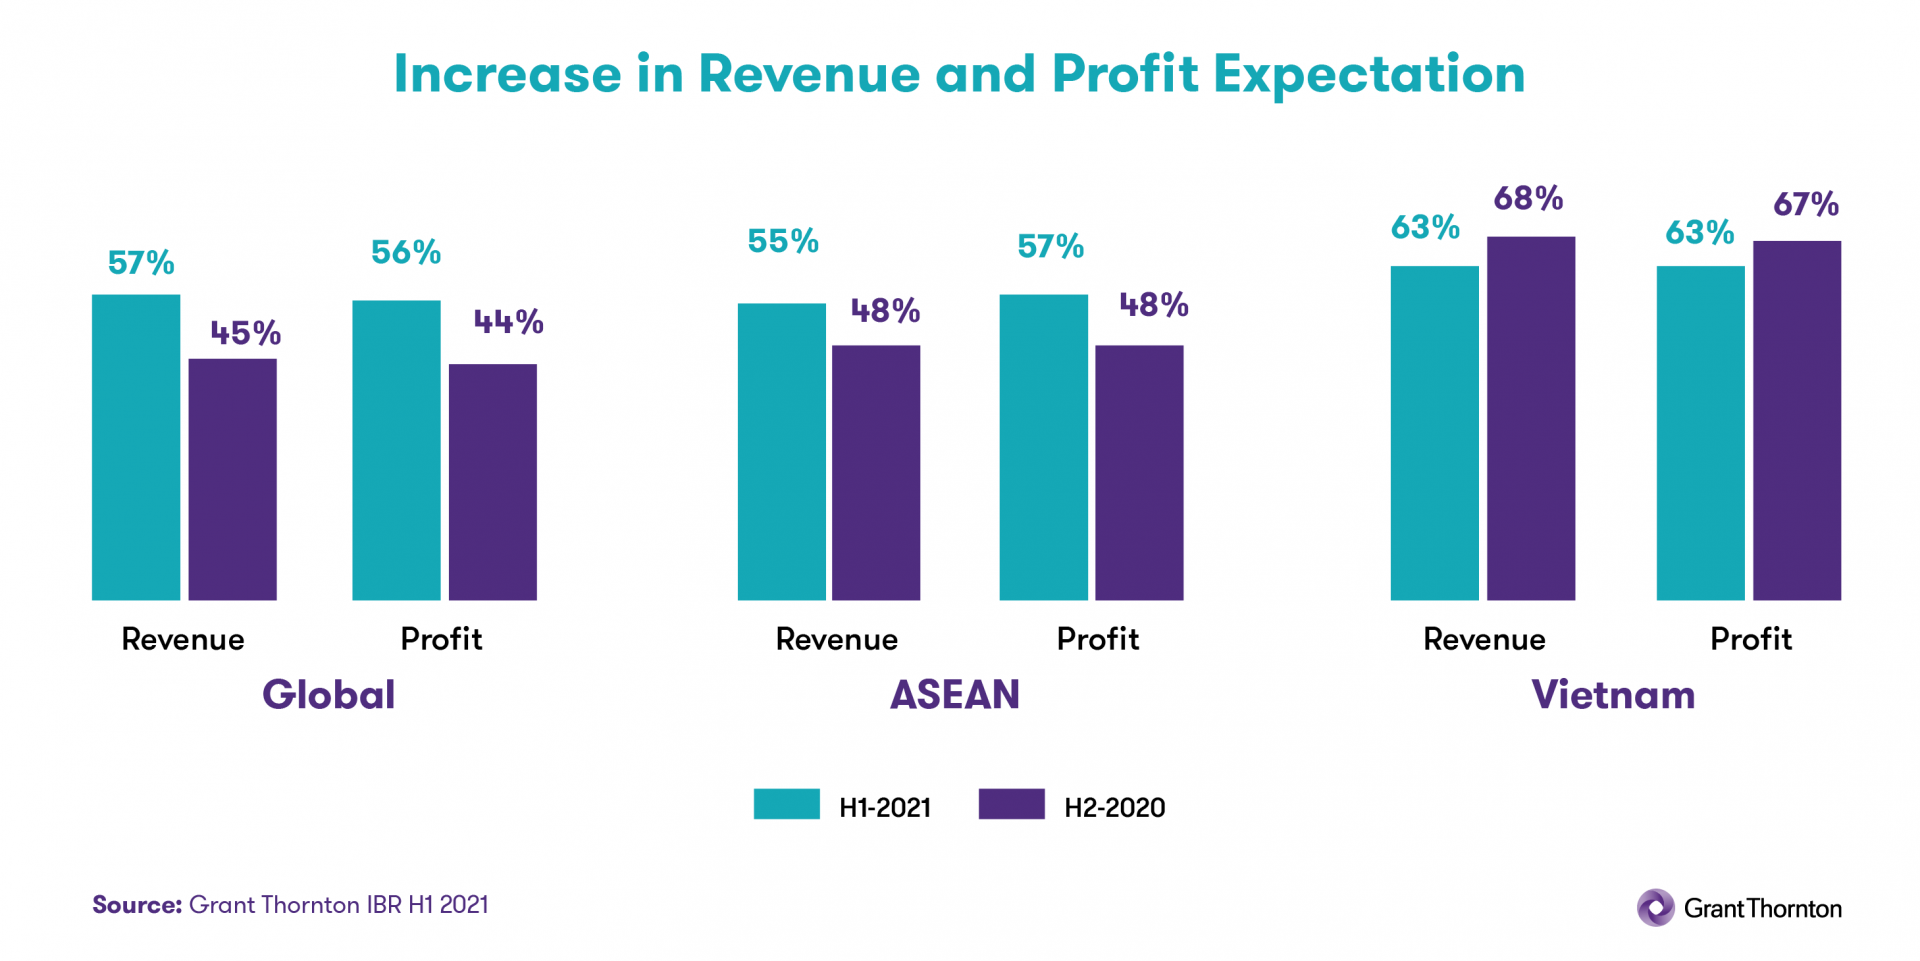 Economic uncertainty weighs on Vietnamese businesses